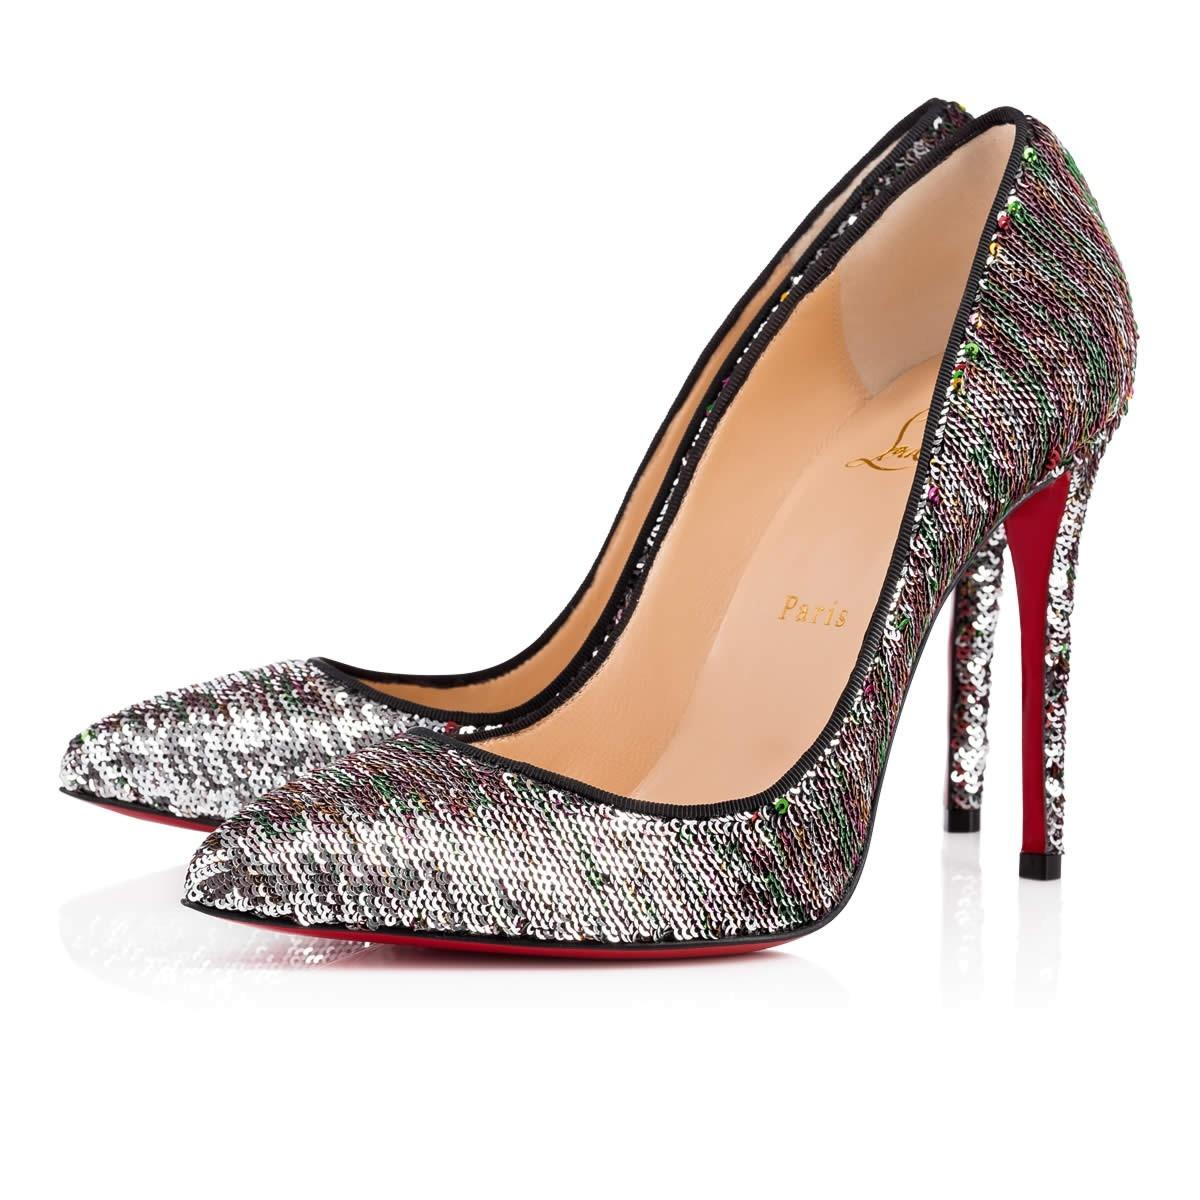 christian louboutin shoes with price